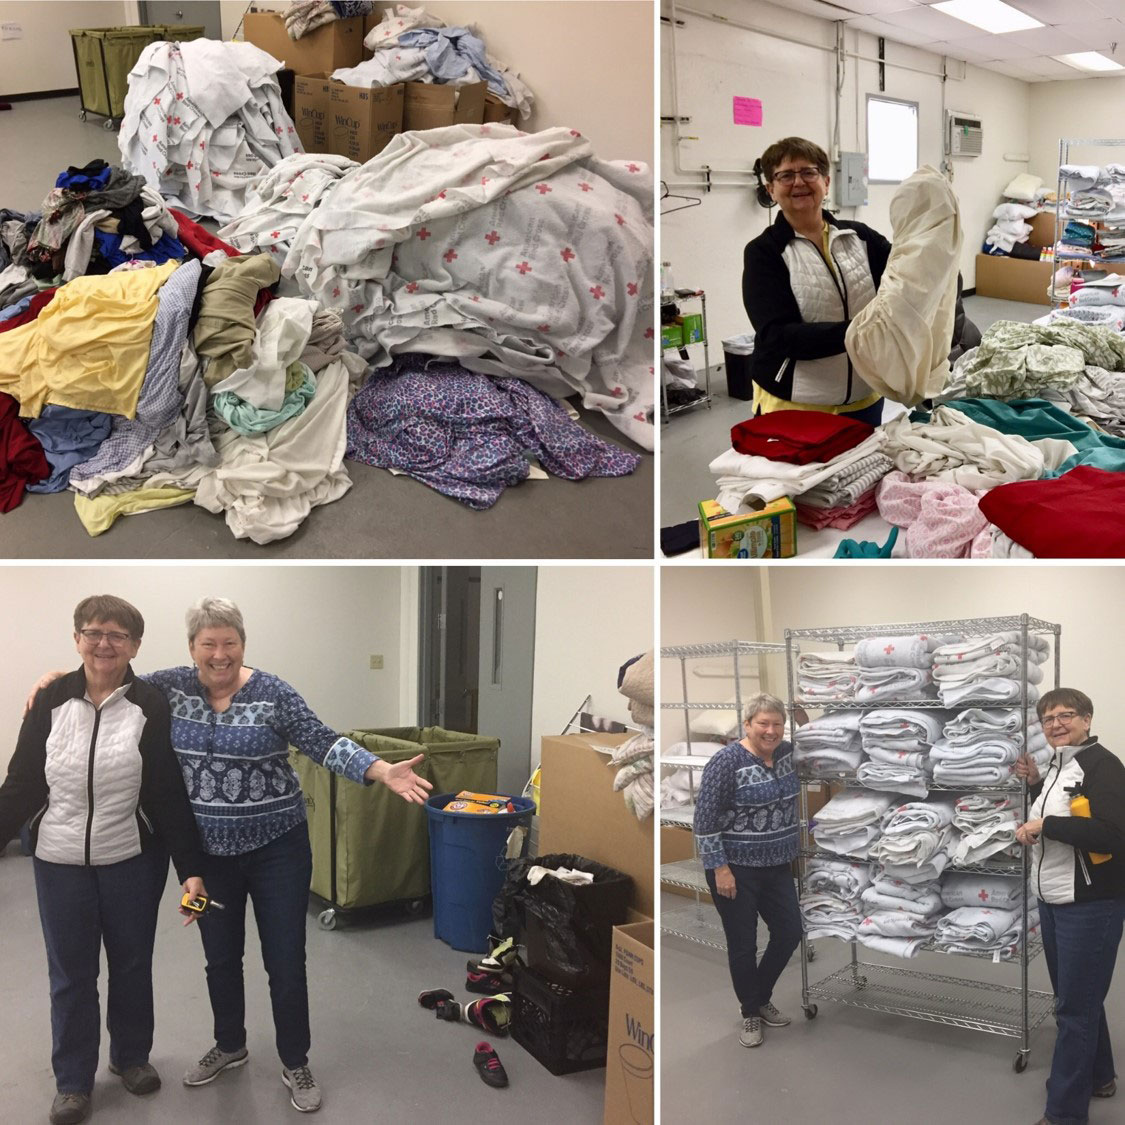 Associate Mariellyn Kuske and Anne Carey folded clothes during their volunteer time at Casa in El Paso.